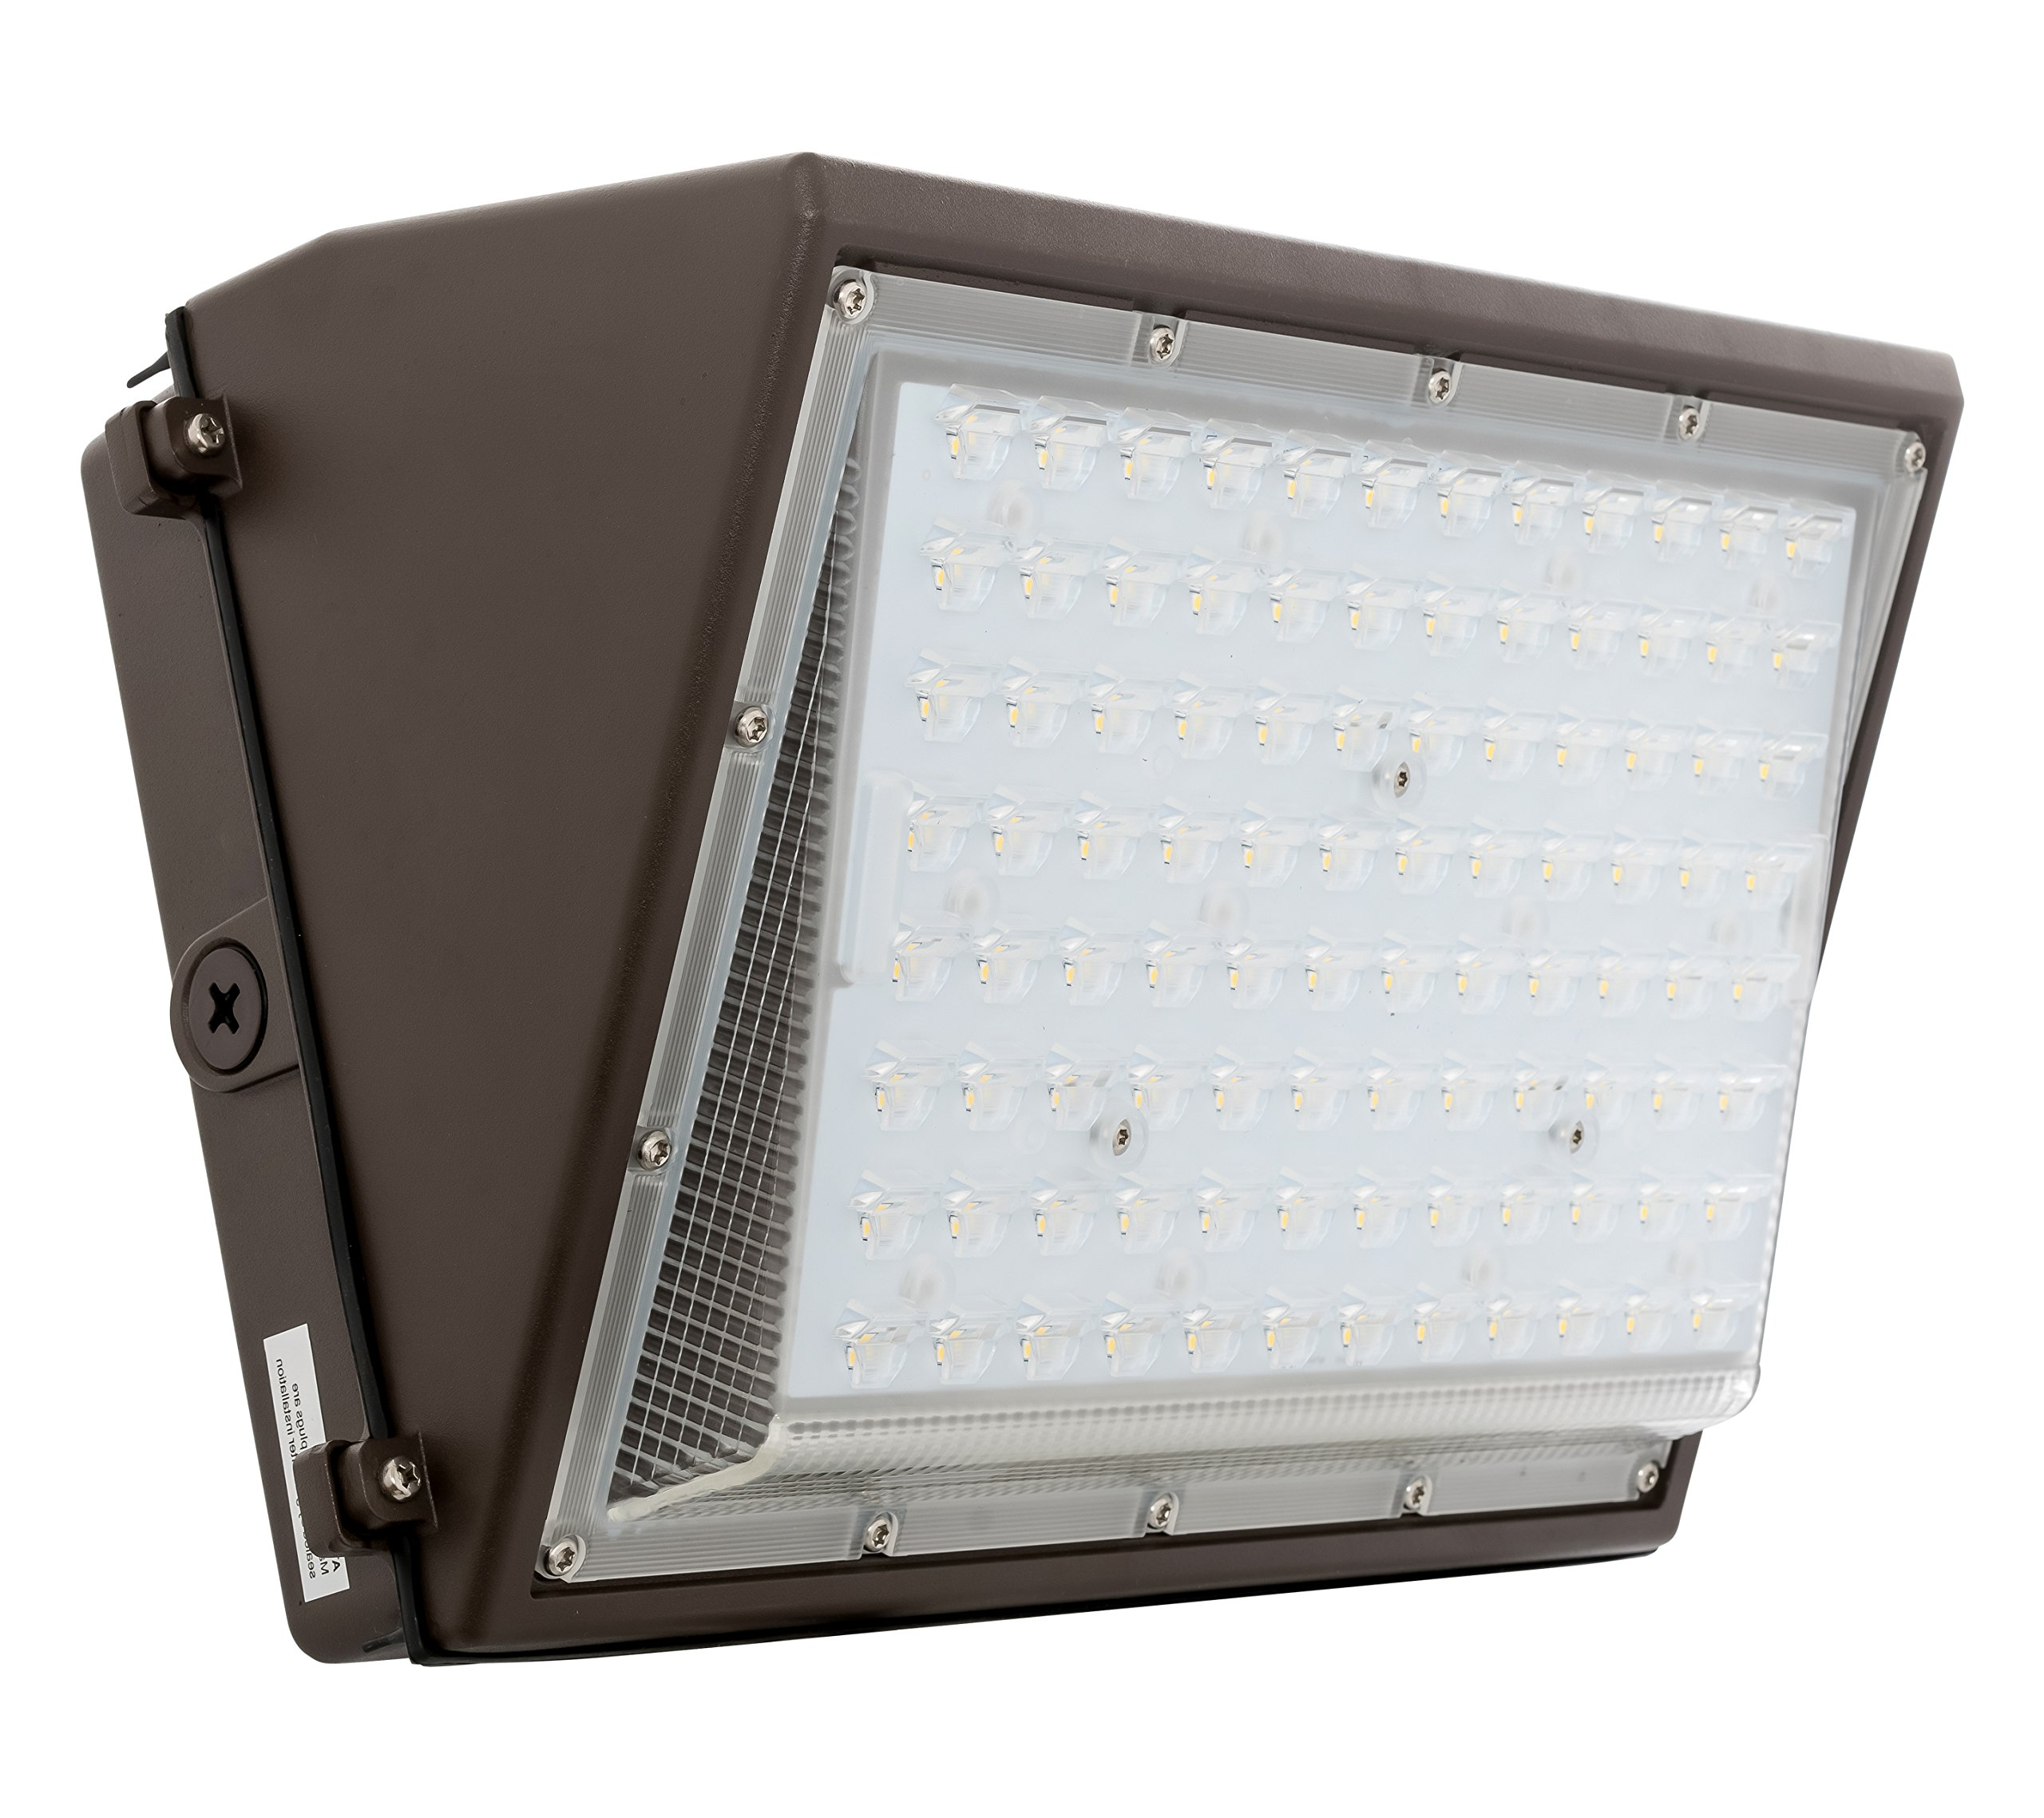 Westgate Lighting 2nd Gen LED Wall Pack Fixture - Outdoor Security Wall Light - Commercial Grade Industrial Quality HPS/HID Replacement - IP65 Waterproof UL Listed (28 Watts, 5000K Cool White)